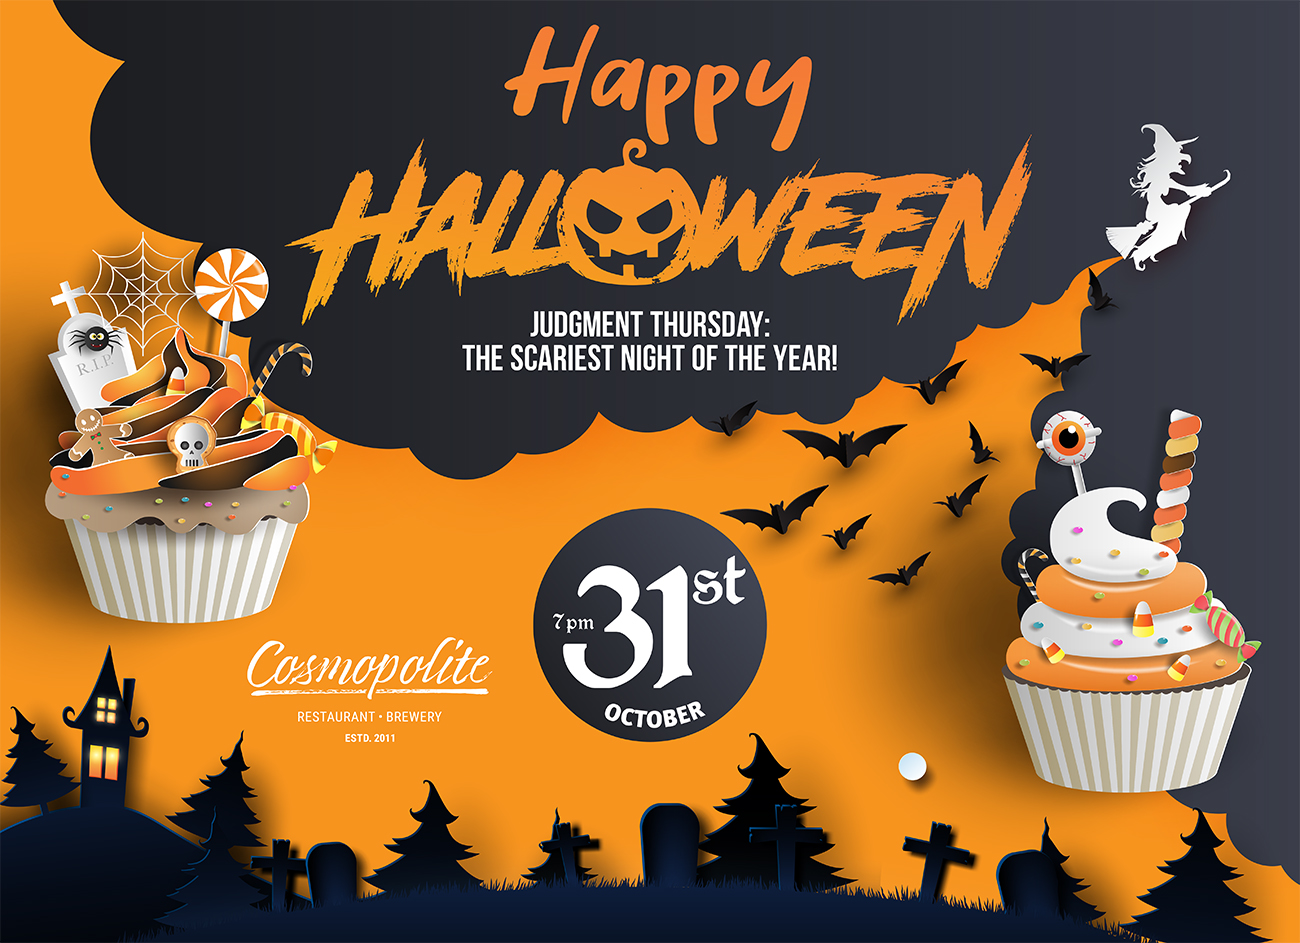 Halloween'2019 Party at Cosmopolite restaurant-brewery!